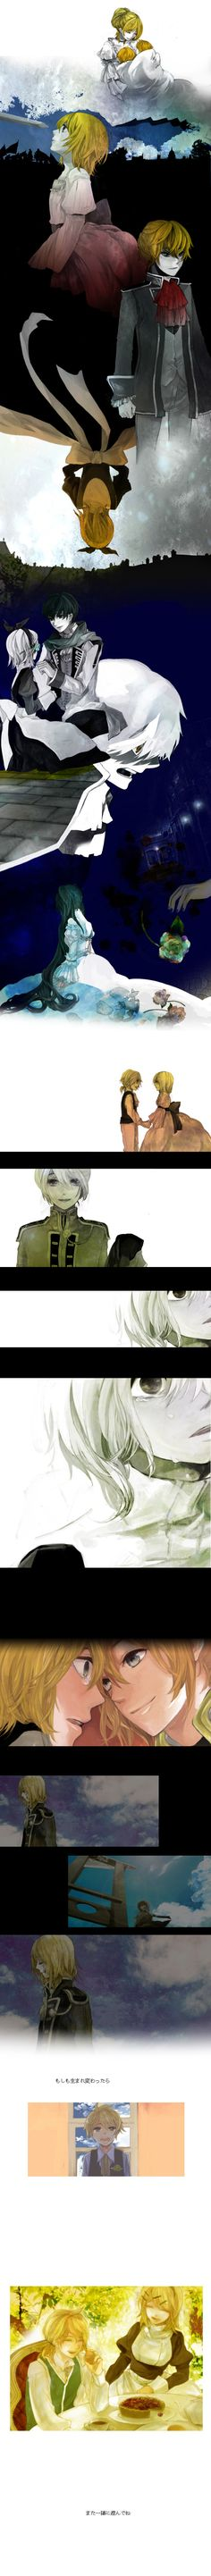 "/Story of Evil/#589697 - Zerochan | Kagamine Rin & Len's ""Daughter of Evil/Servant of Evil"""